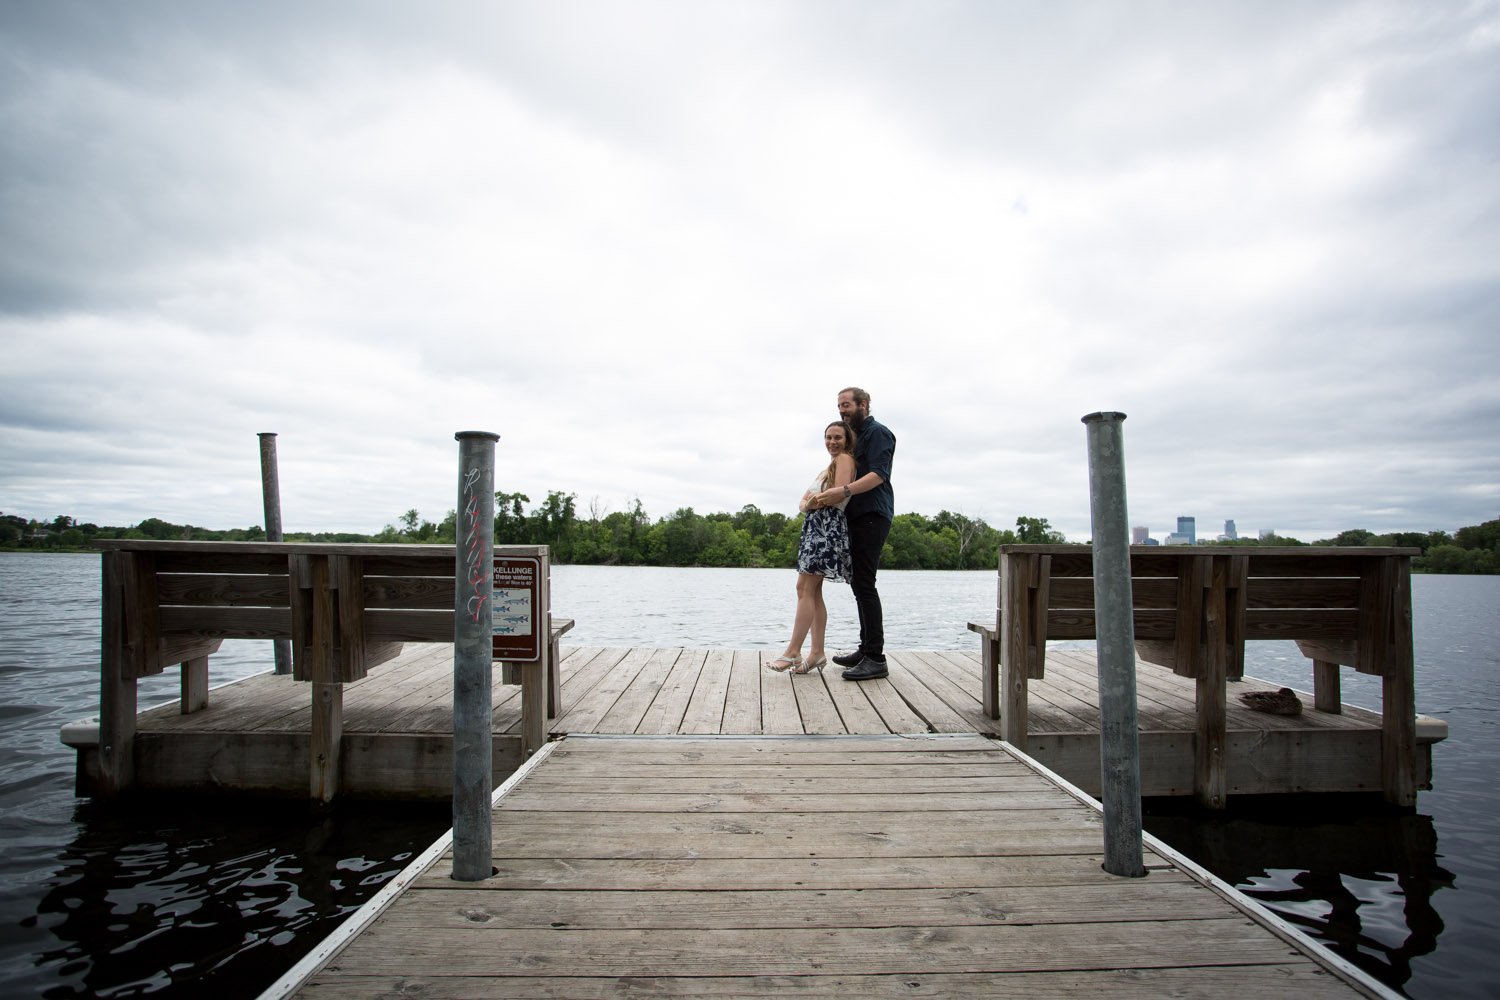 02-uptown-lake-of-the-isles-dock-minneapolis-minnesota-engagment-photographer-mahonen-photography.jpg